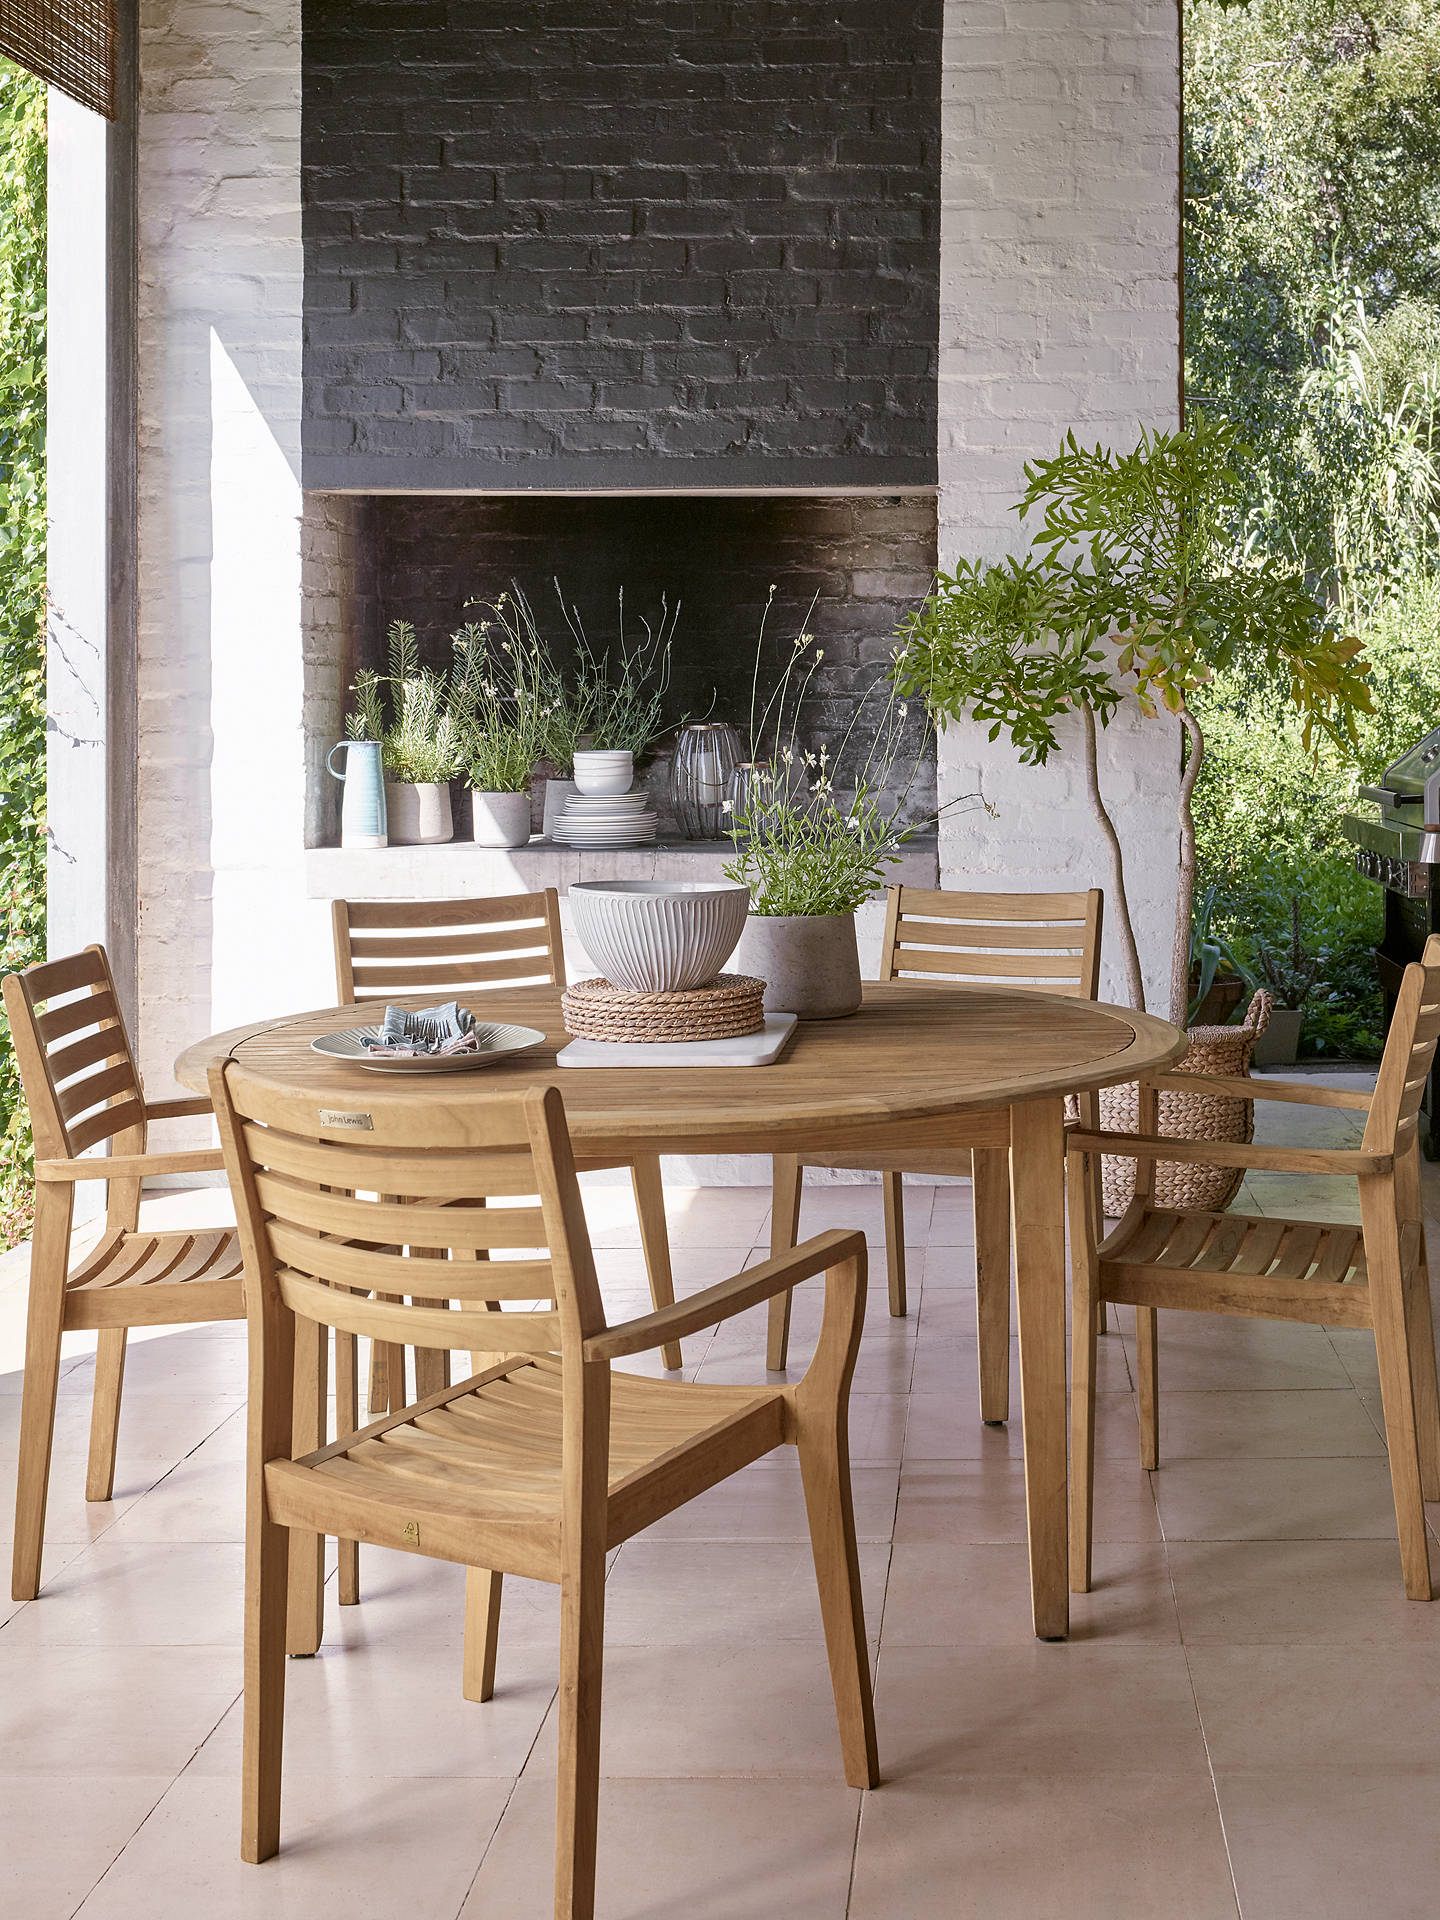 John Lewis & Partners Longstock 8-Seater Round Garden Dining Table,  FSC-Certified (Teak), Natural